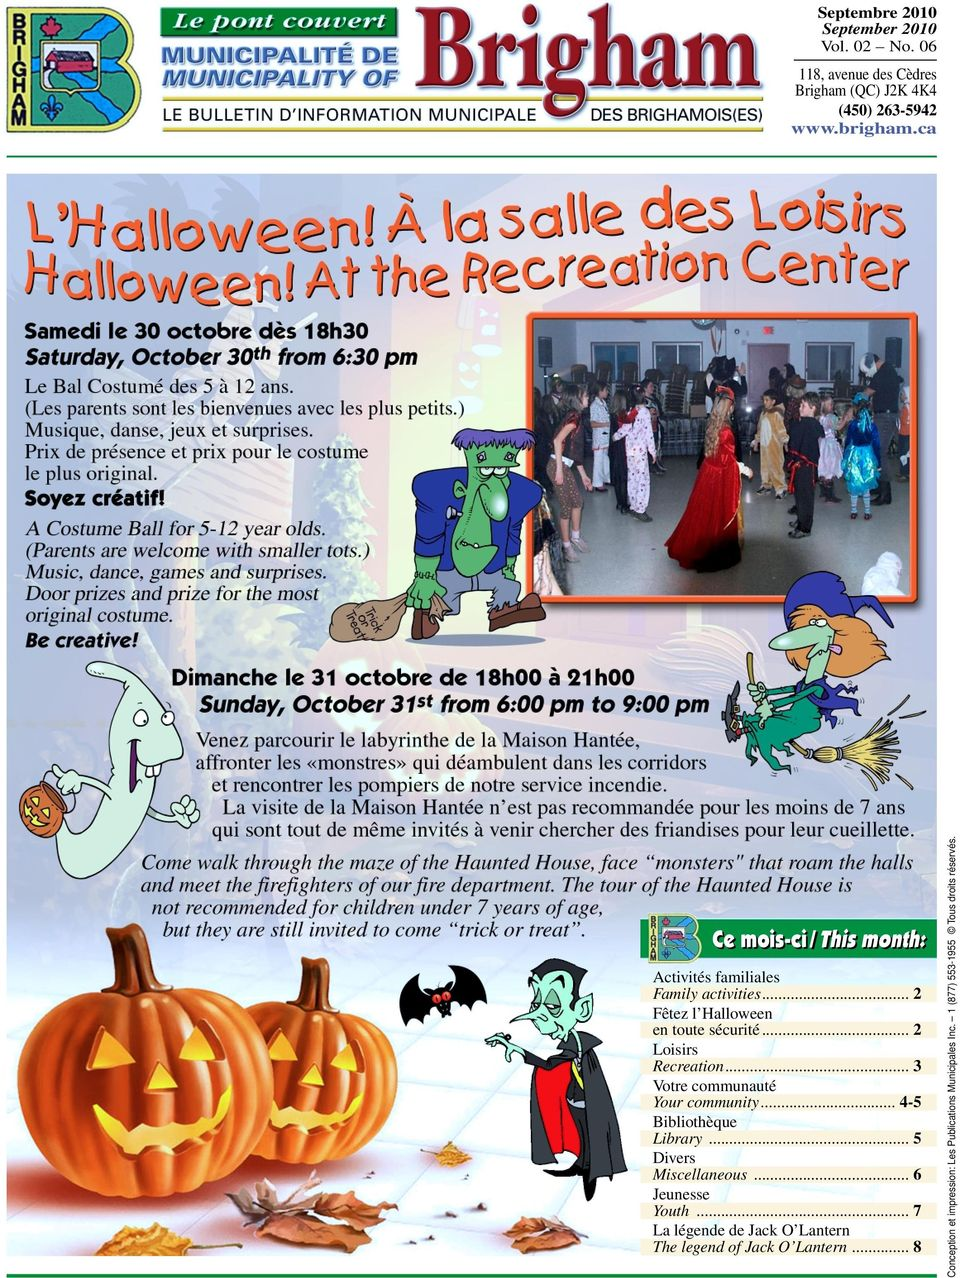 .. 5 Divers Miscellaneous... 6 Jeunesse Youth... 7 La légende de Jack O Lantern The legend of Jack O Lantern.